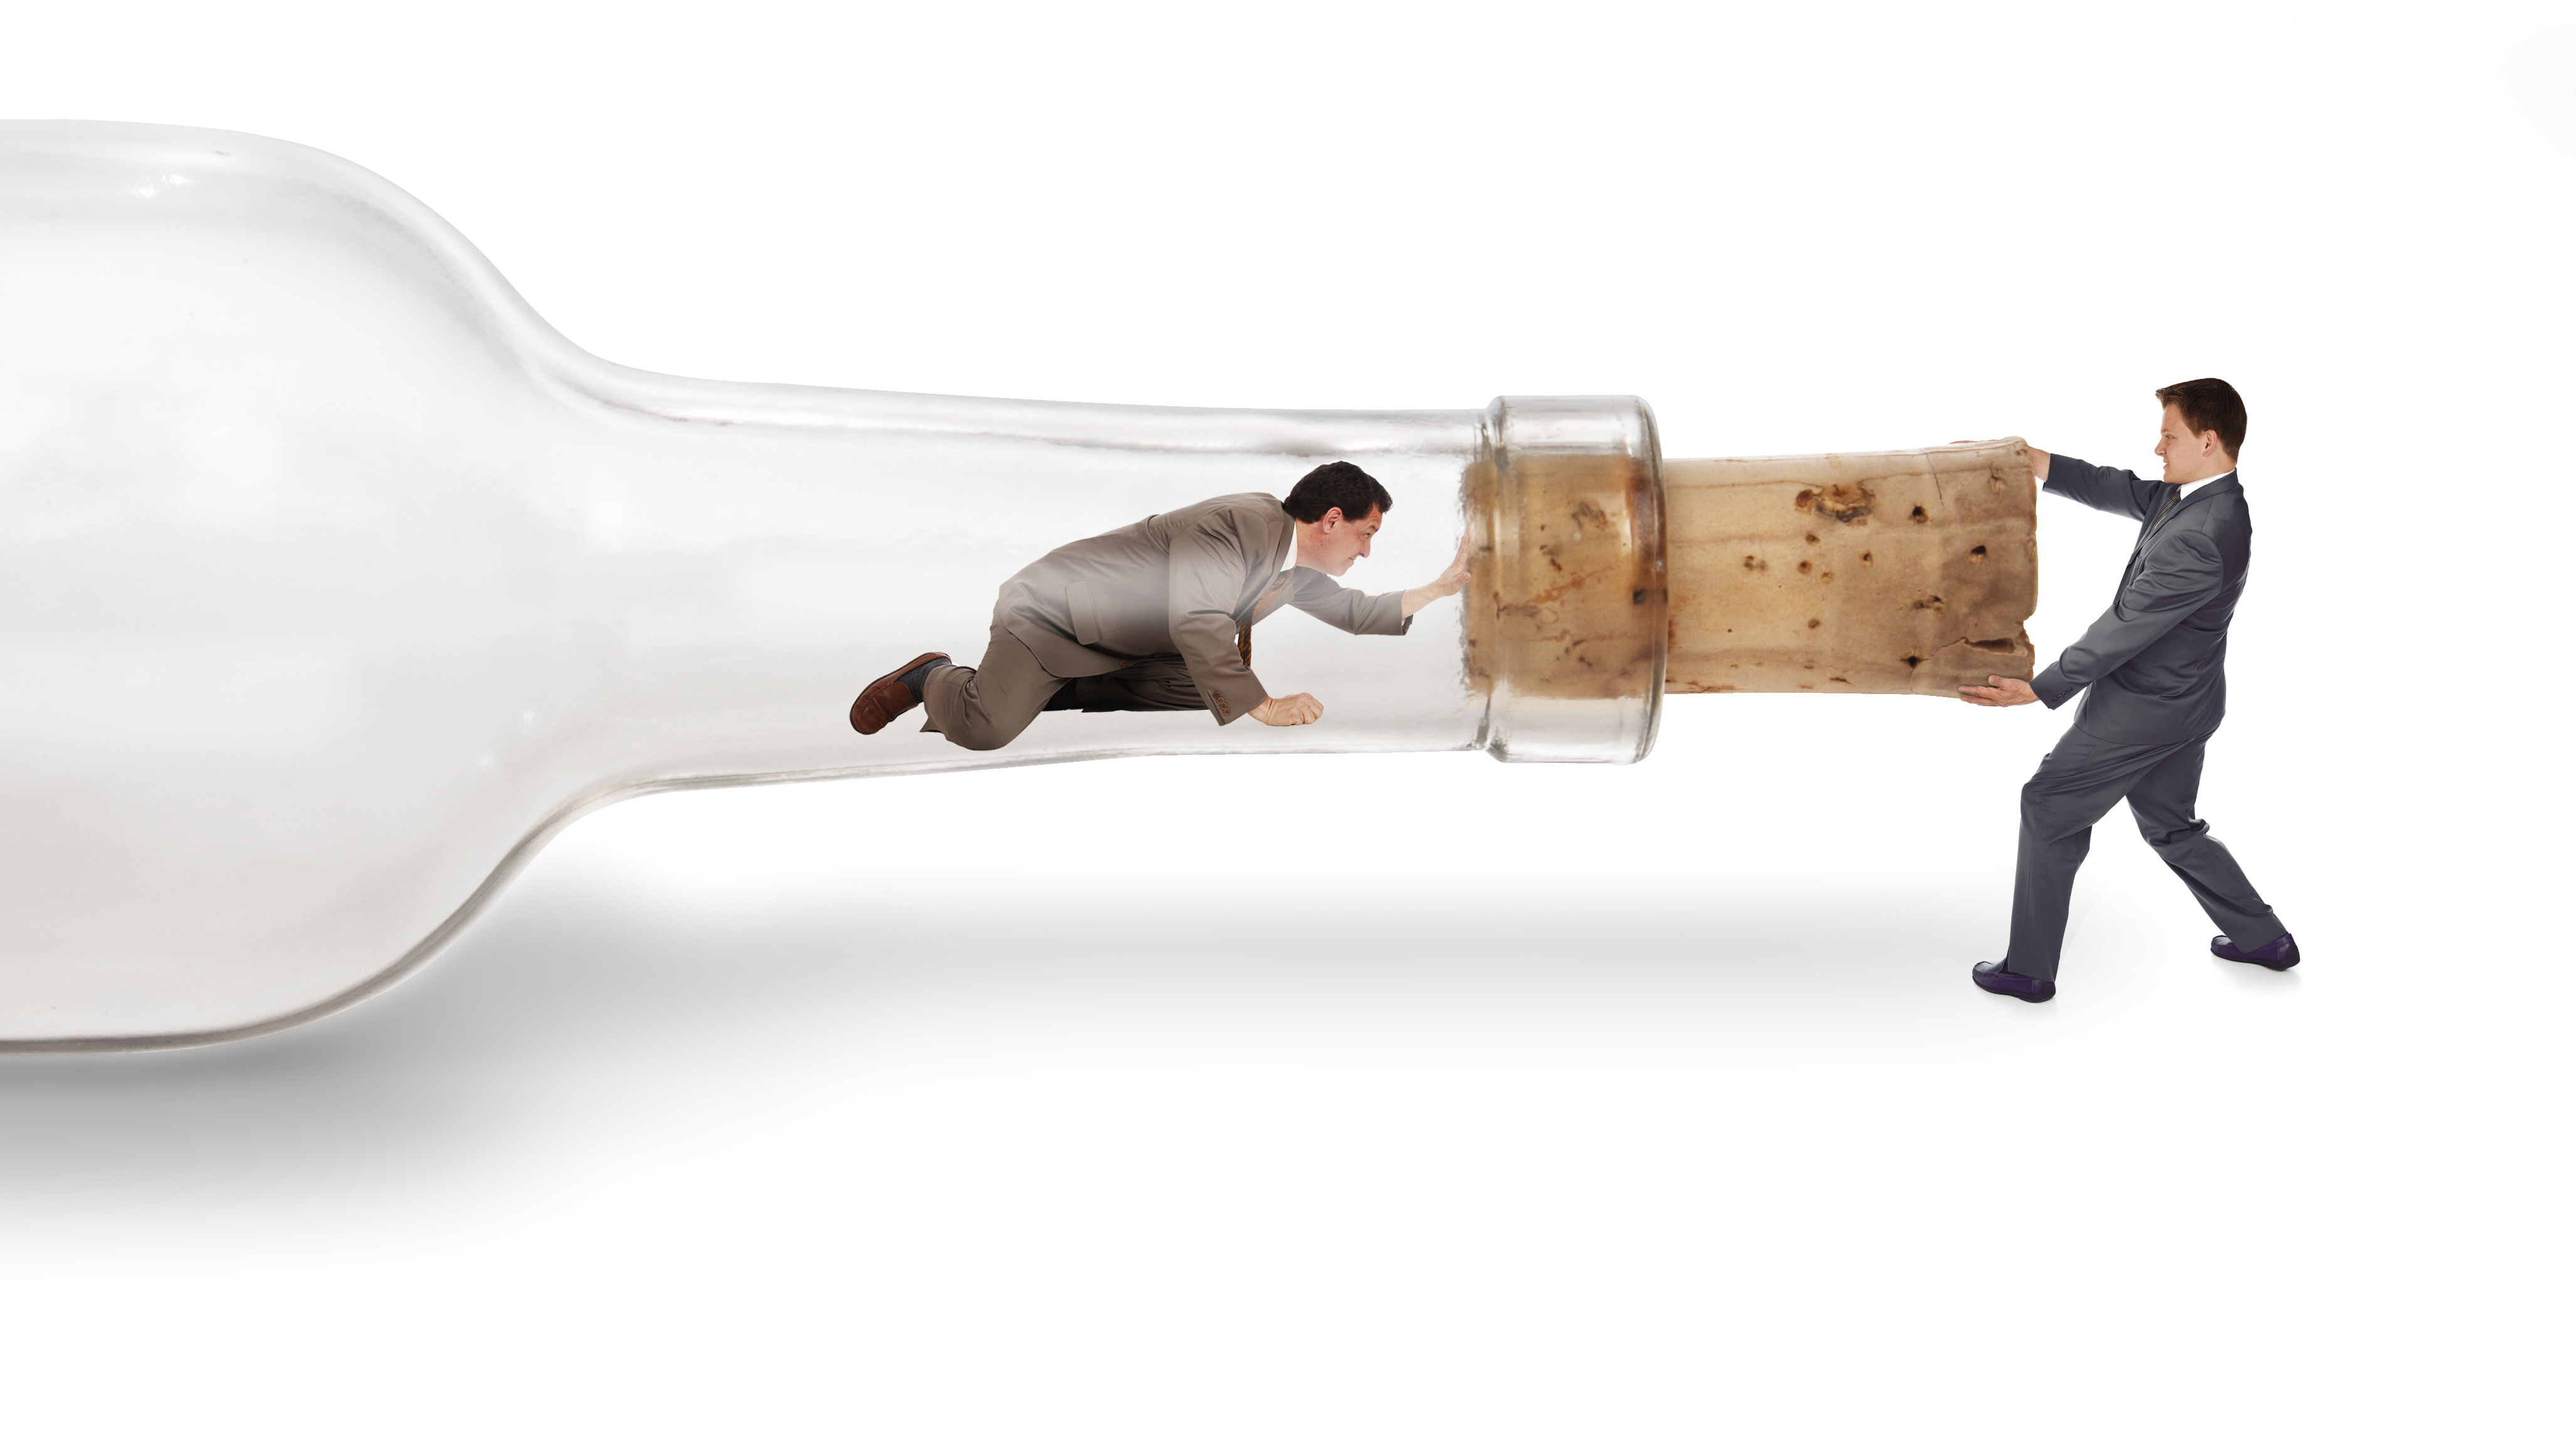 3 WAYS TO UNCORK BOTTLENECKS IN THE ORGANIZATION YOU LEAD